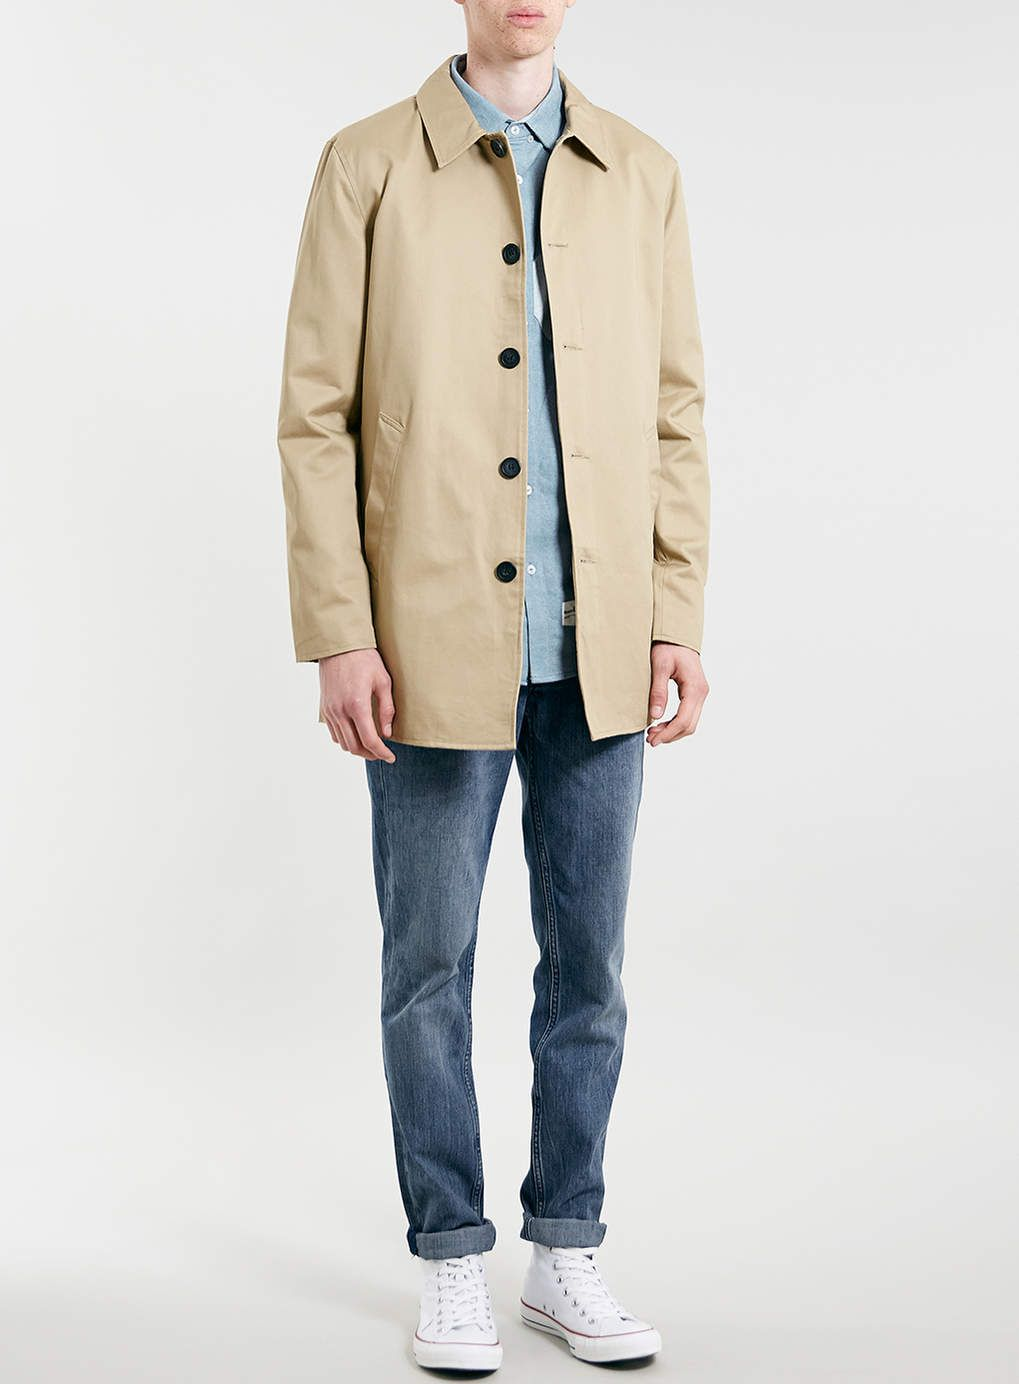 STONE SINGLE BREASTED TRENCH COAT  a9d4900cb16f2